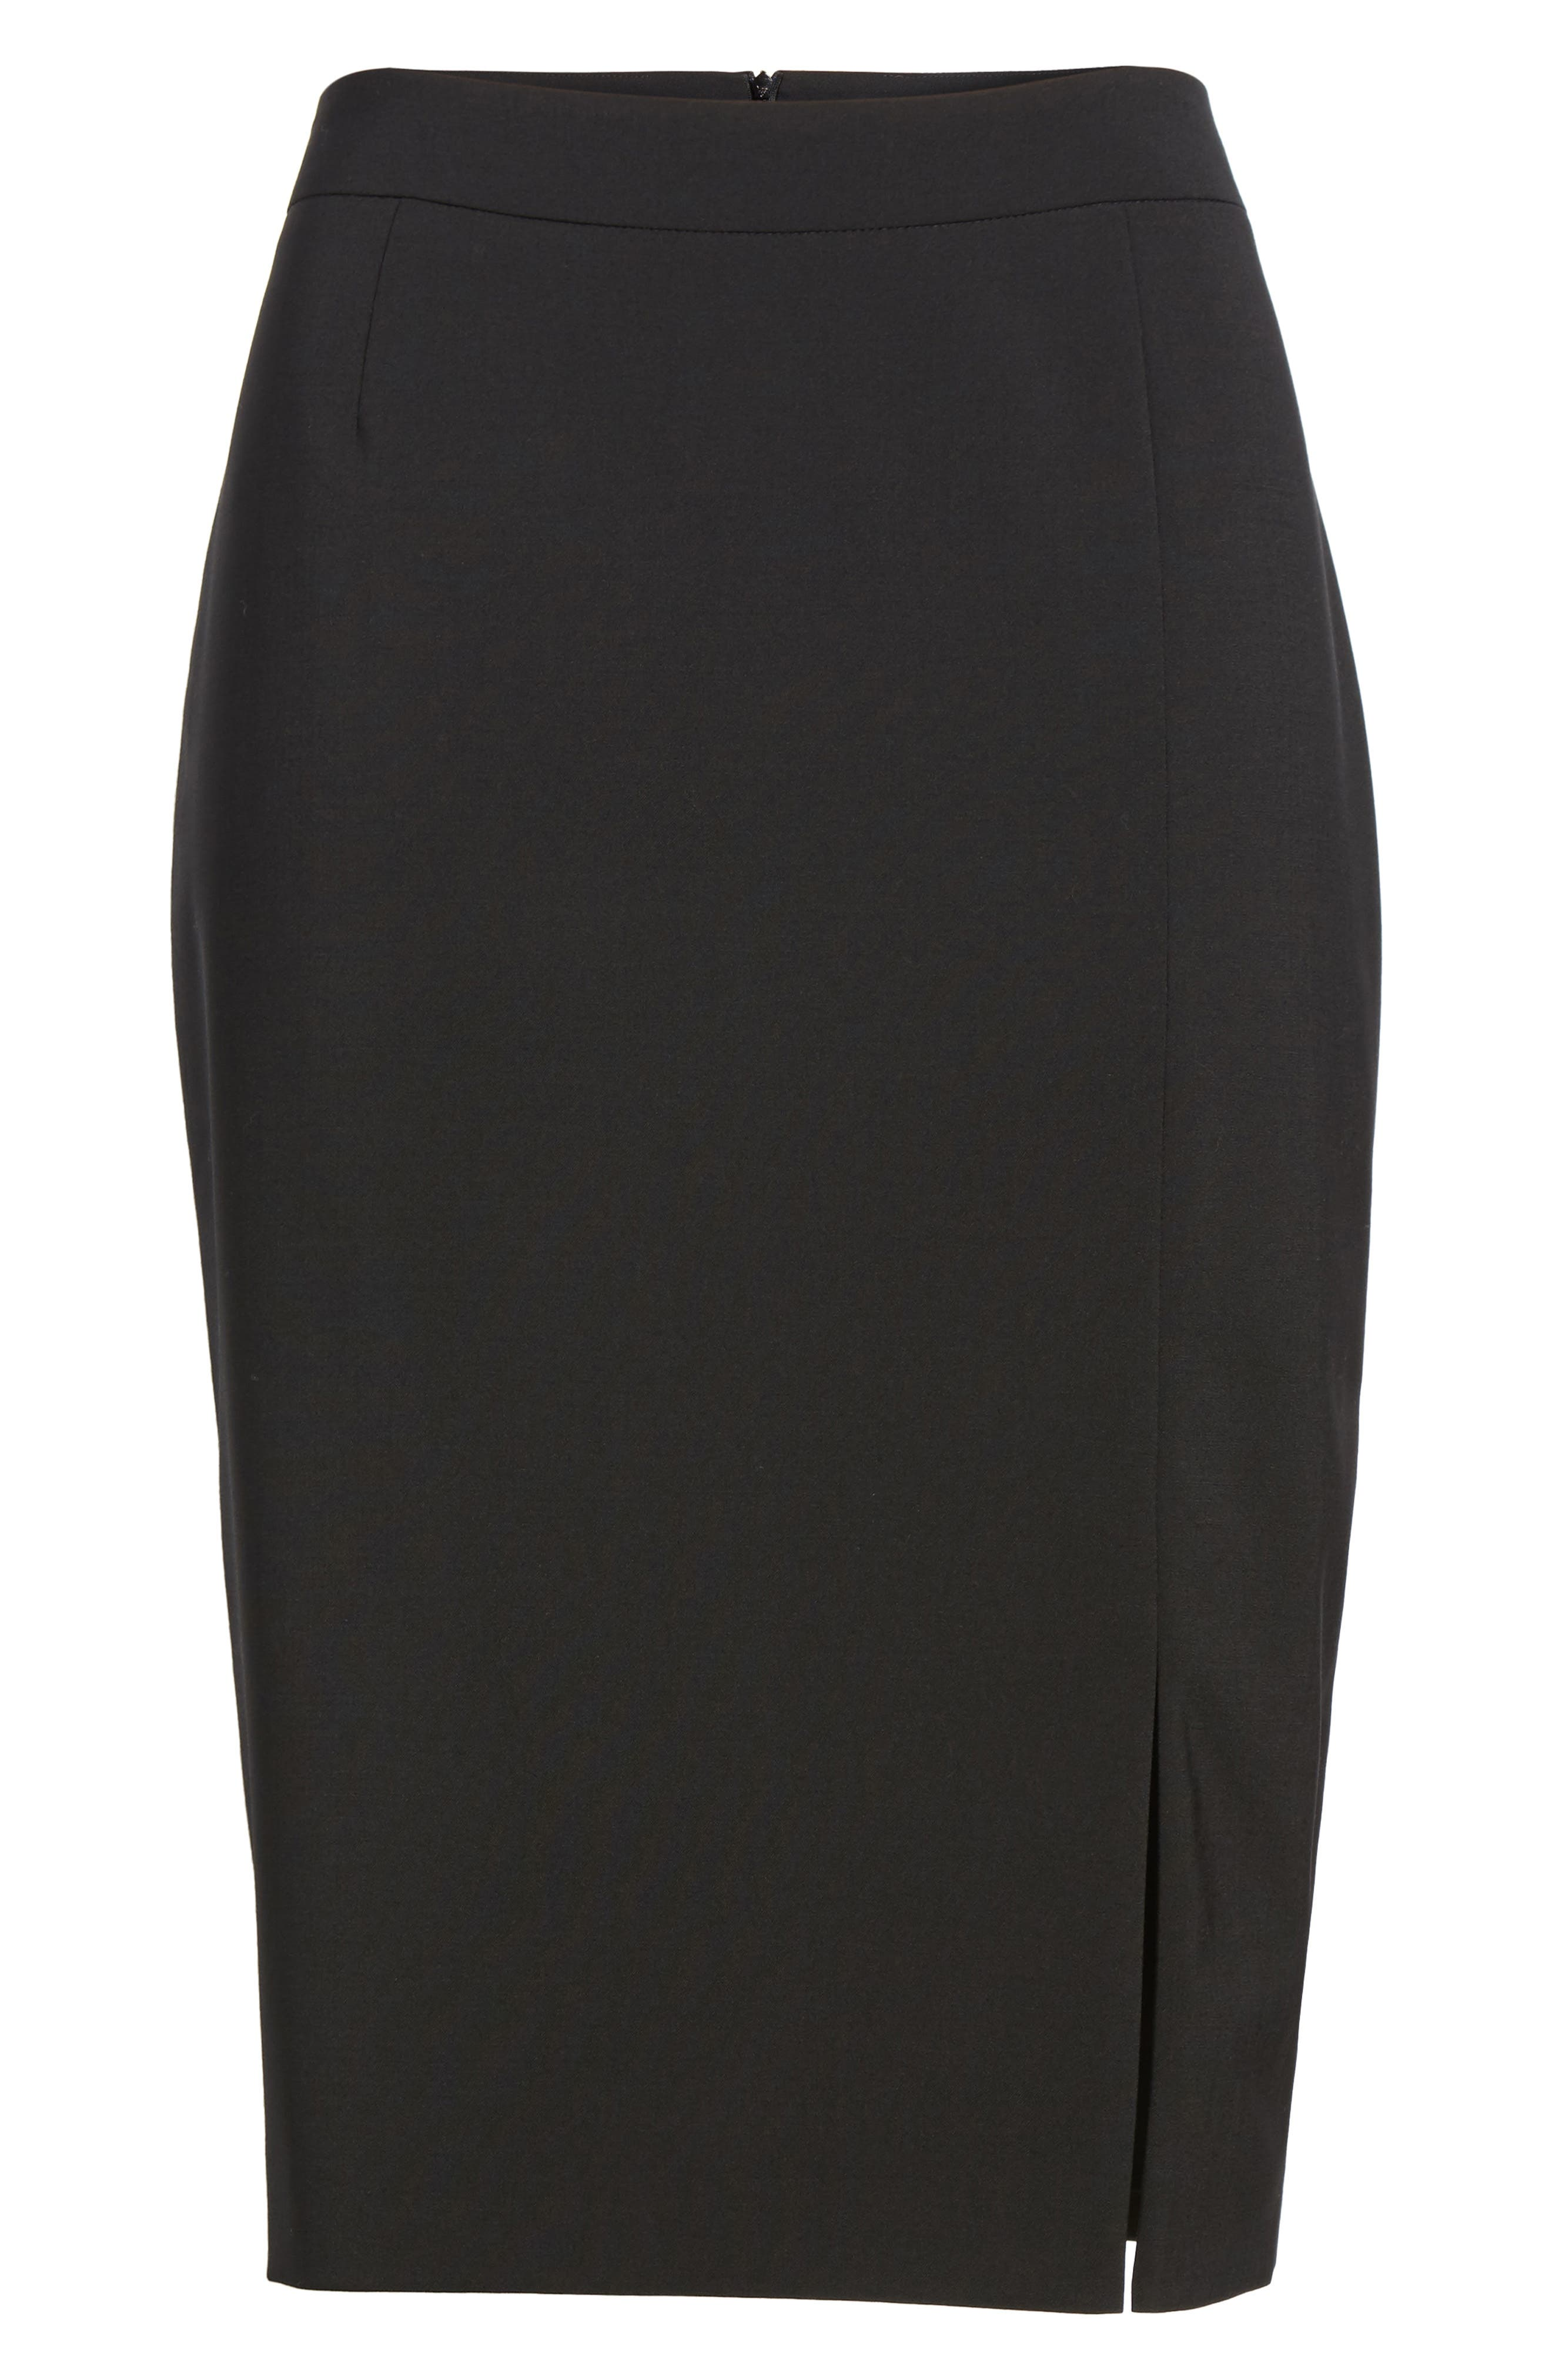 Volania Stretch Wool Pencil Skirt,                             Alternate thumbnail 6, color,                             Black